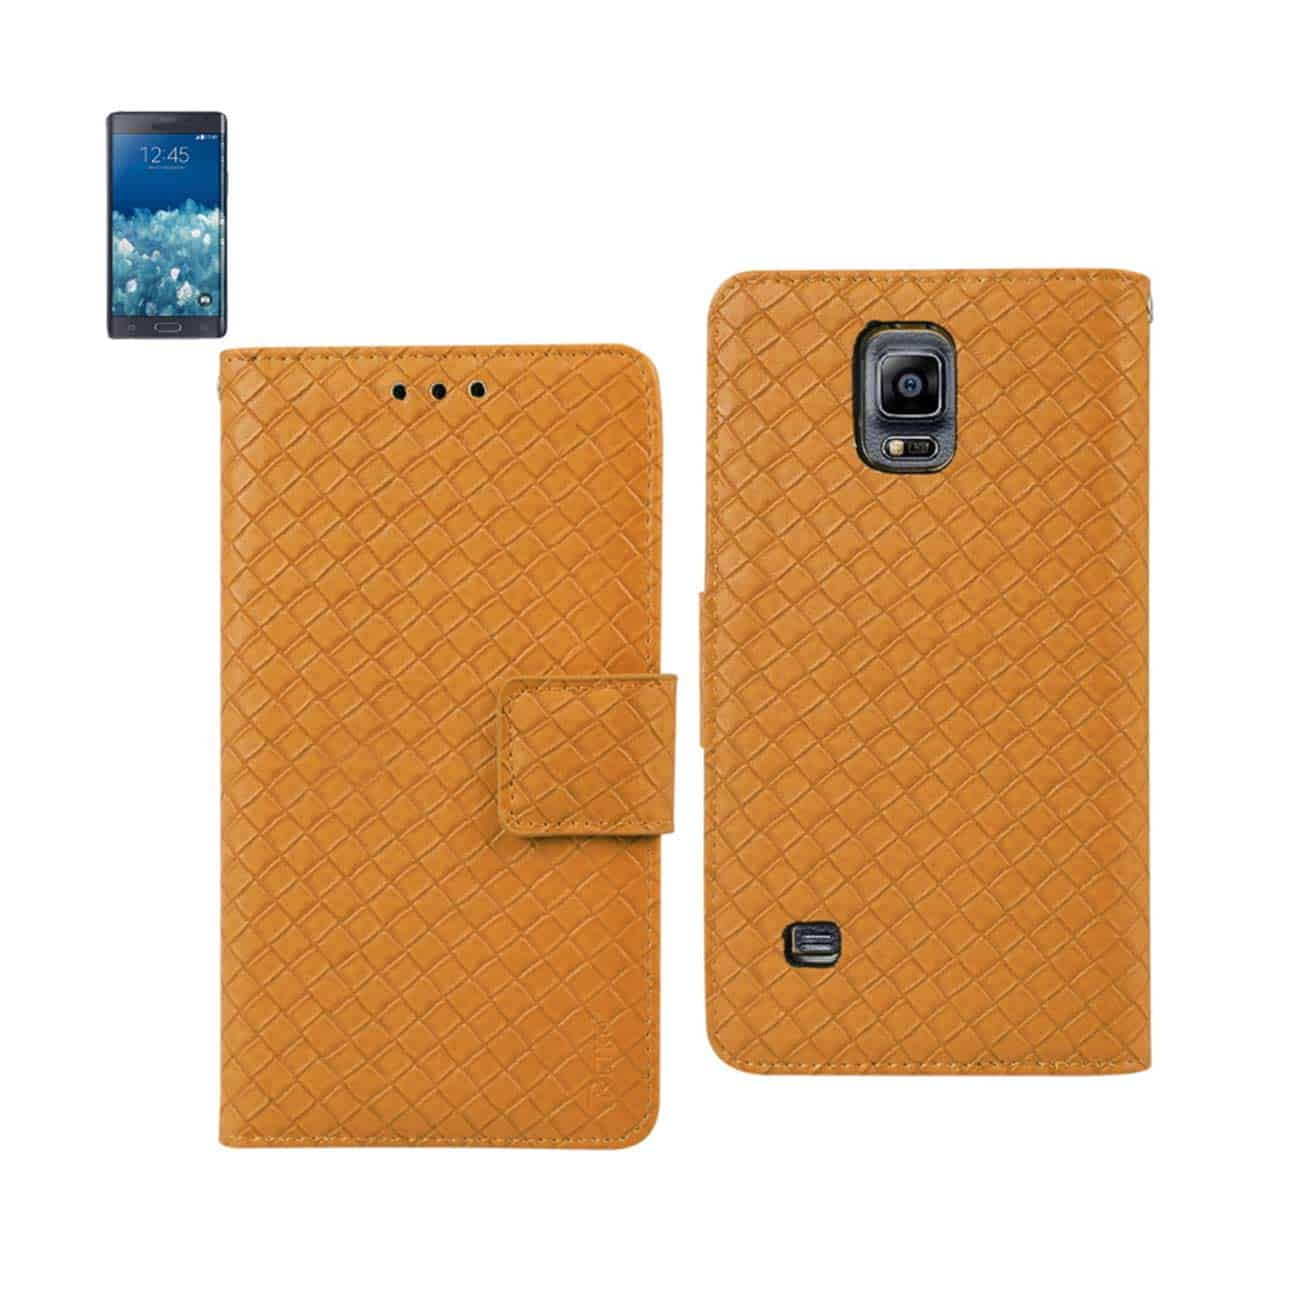 SAMSUNG GALAXY NOTE EDGE BRAIDED WALLET CASE IN YELLOW